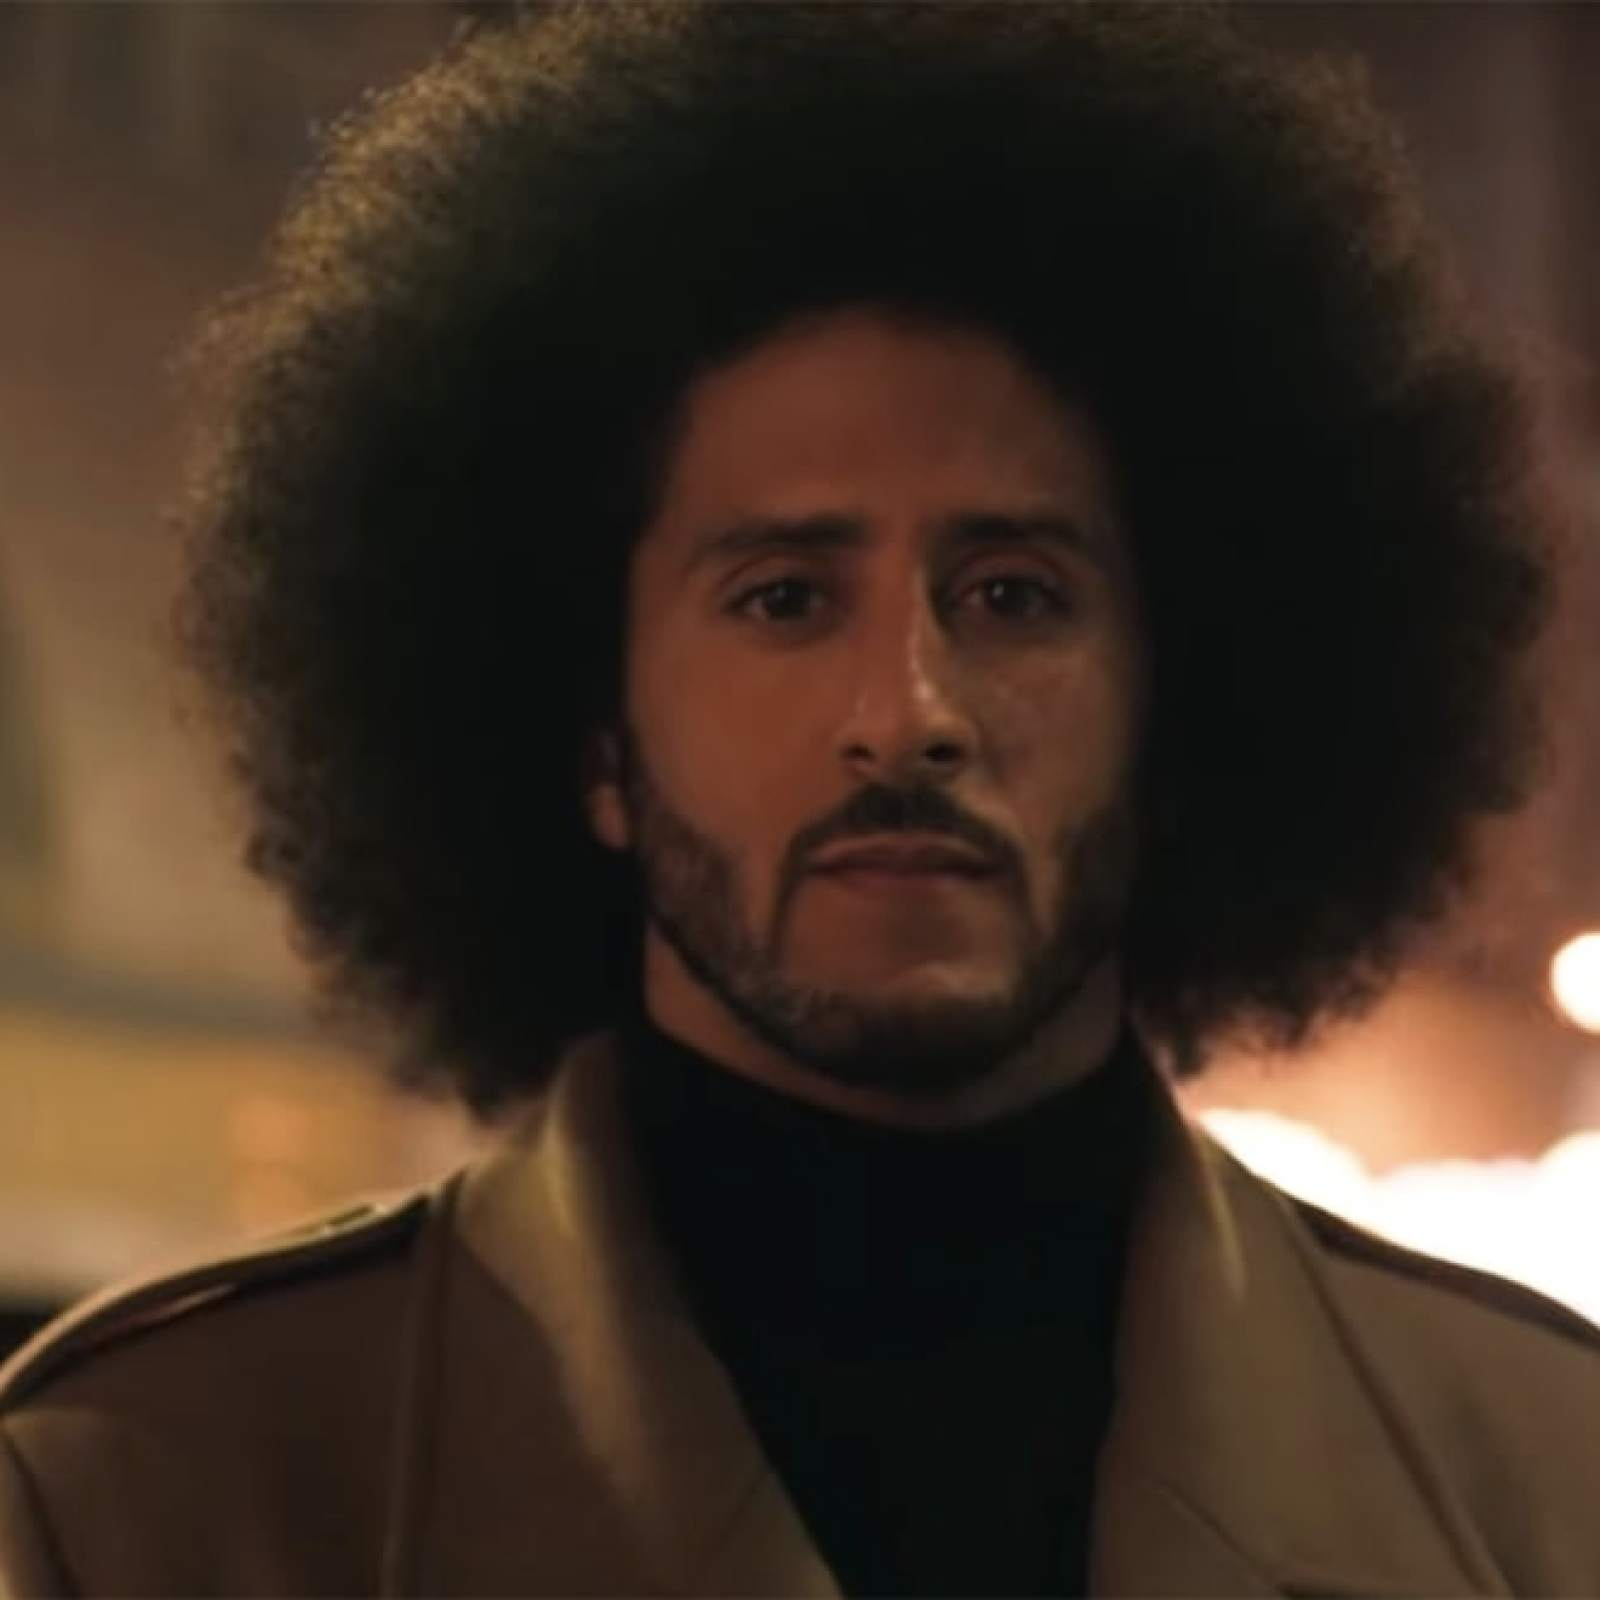 Picture of Kaepernick, Image from the Nike Commercial